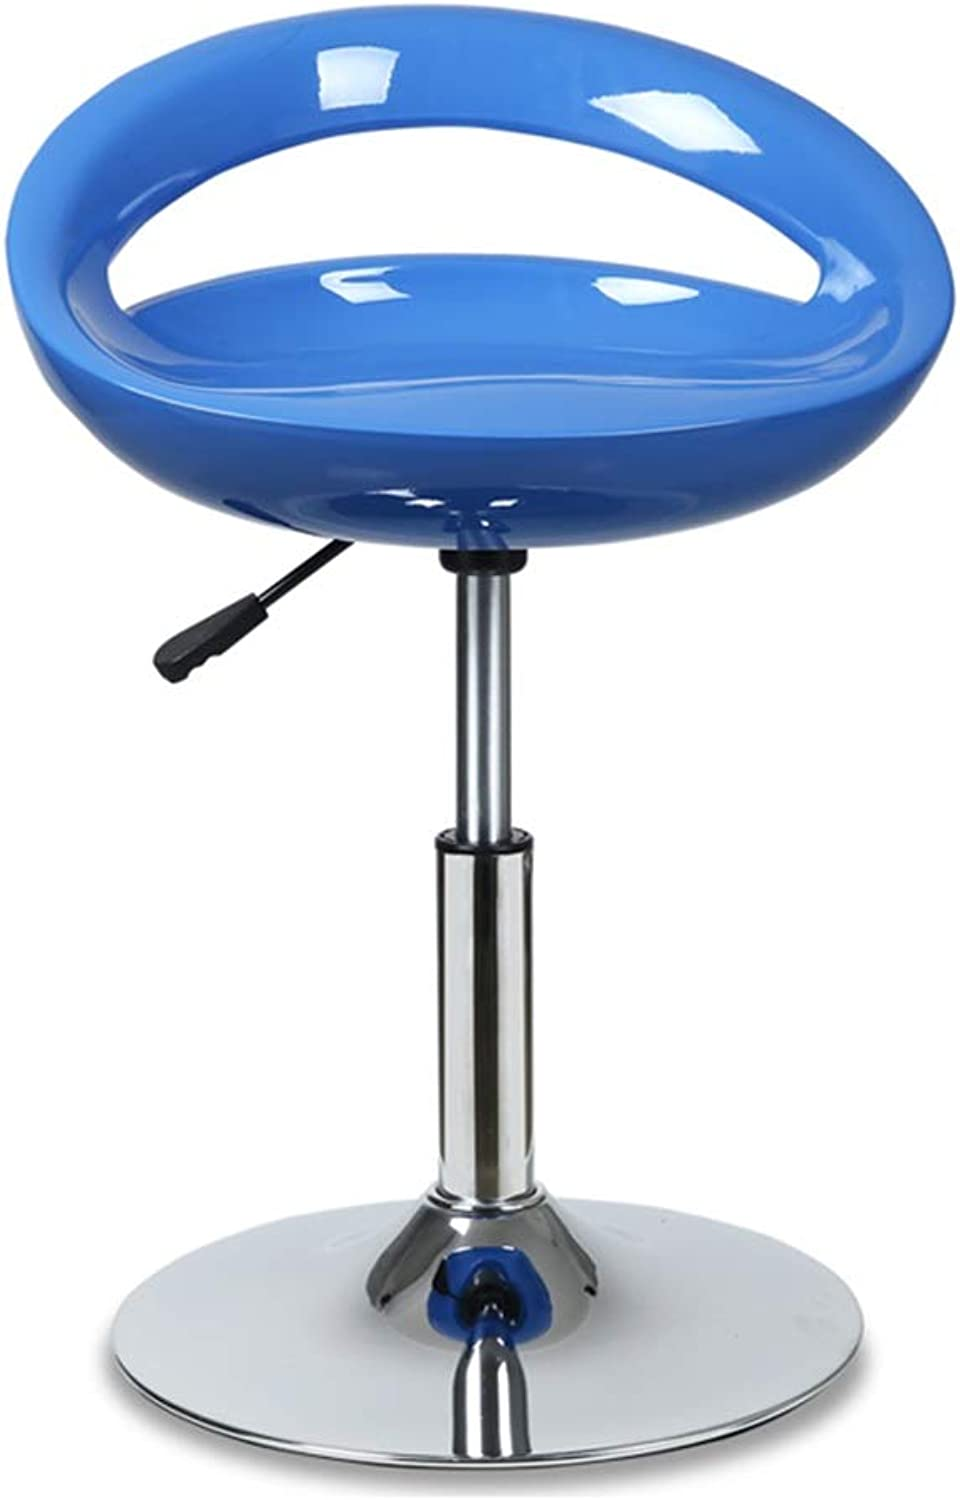 Barber Shop Bar Chair, redatable Metal Bracket Adjustable Bar Chair Tea Shop Coffee Shop Bar Stool Living Room Bedroom High Stool (color   Sky bluee, Size   41-53CM)